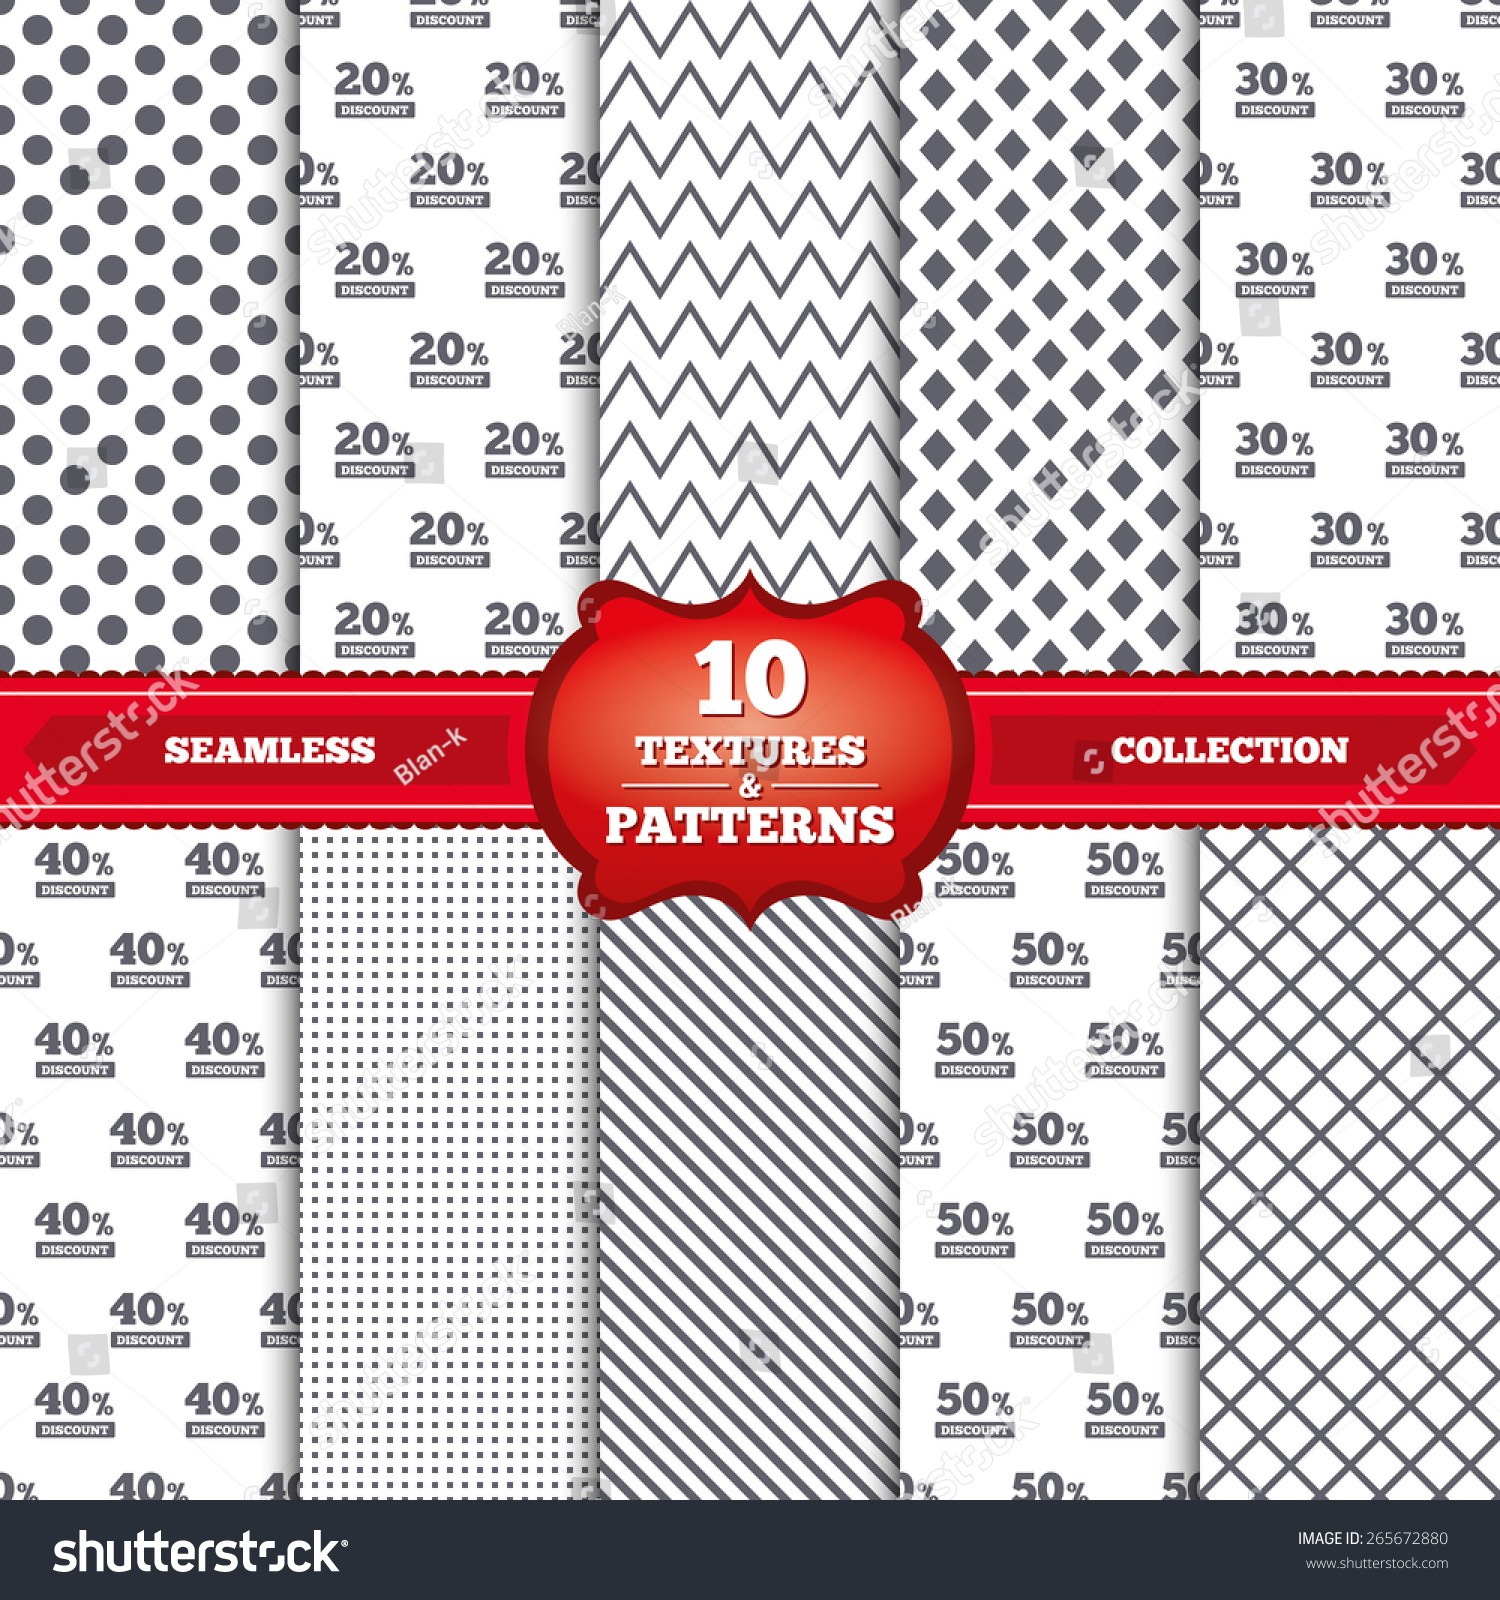 Repeatable patterns textures sale discount icons stock vector repeatable patterns and textures sale discount icons special offer price signs 20 biocorpaavc Choice Image